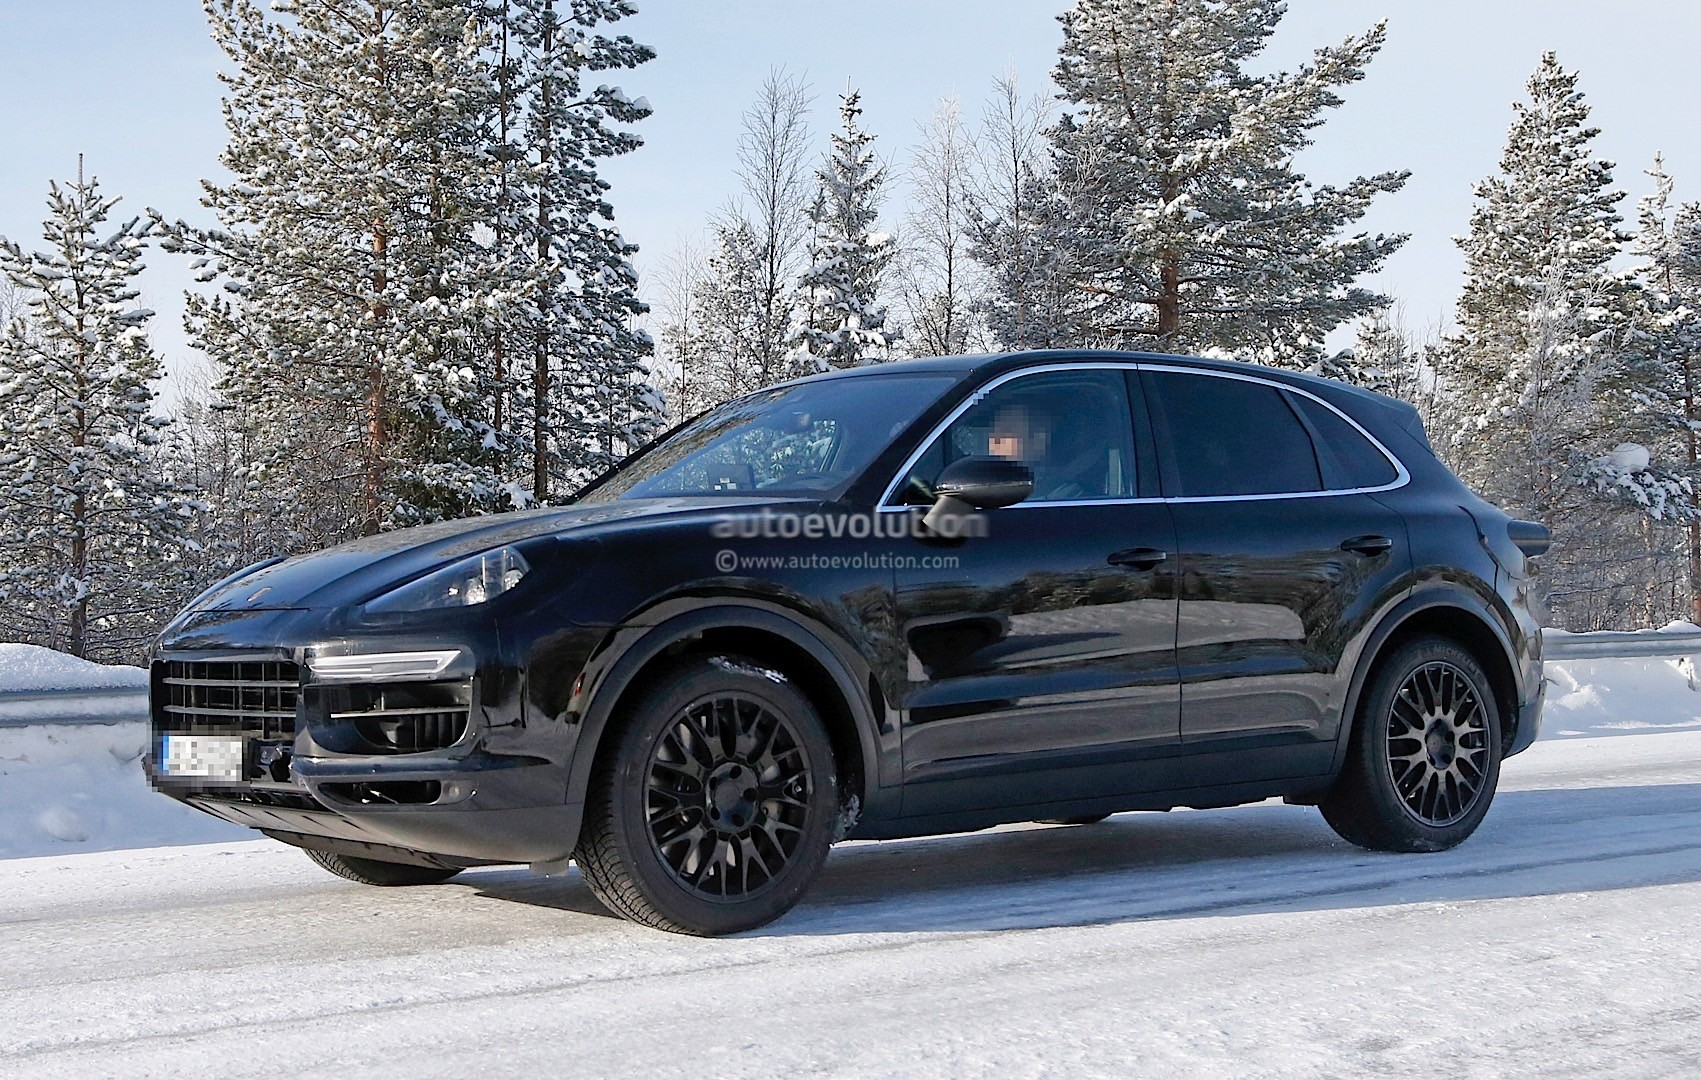 2018-porsche-cayenne-spied-once-more-enjoying-the-last-bits-of-winter_4